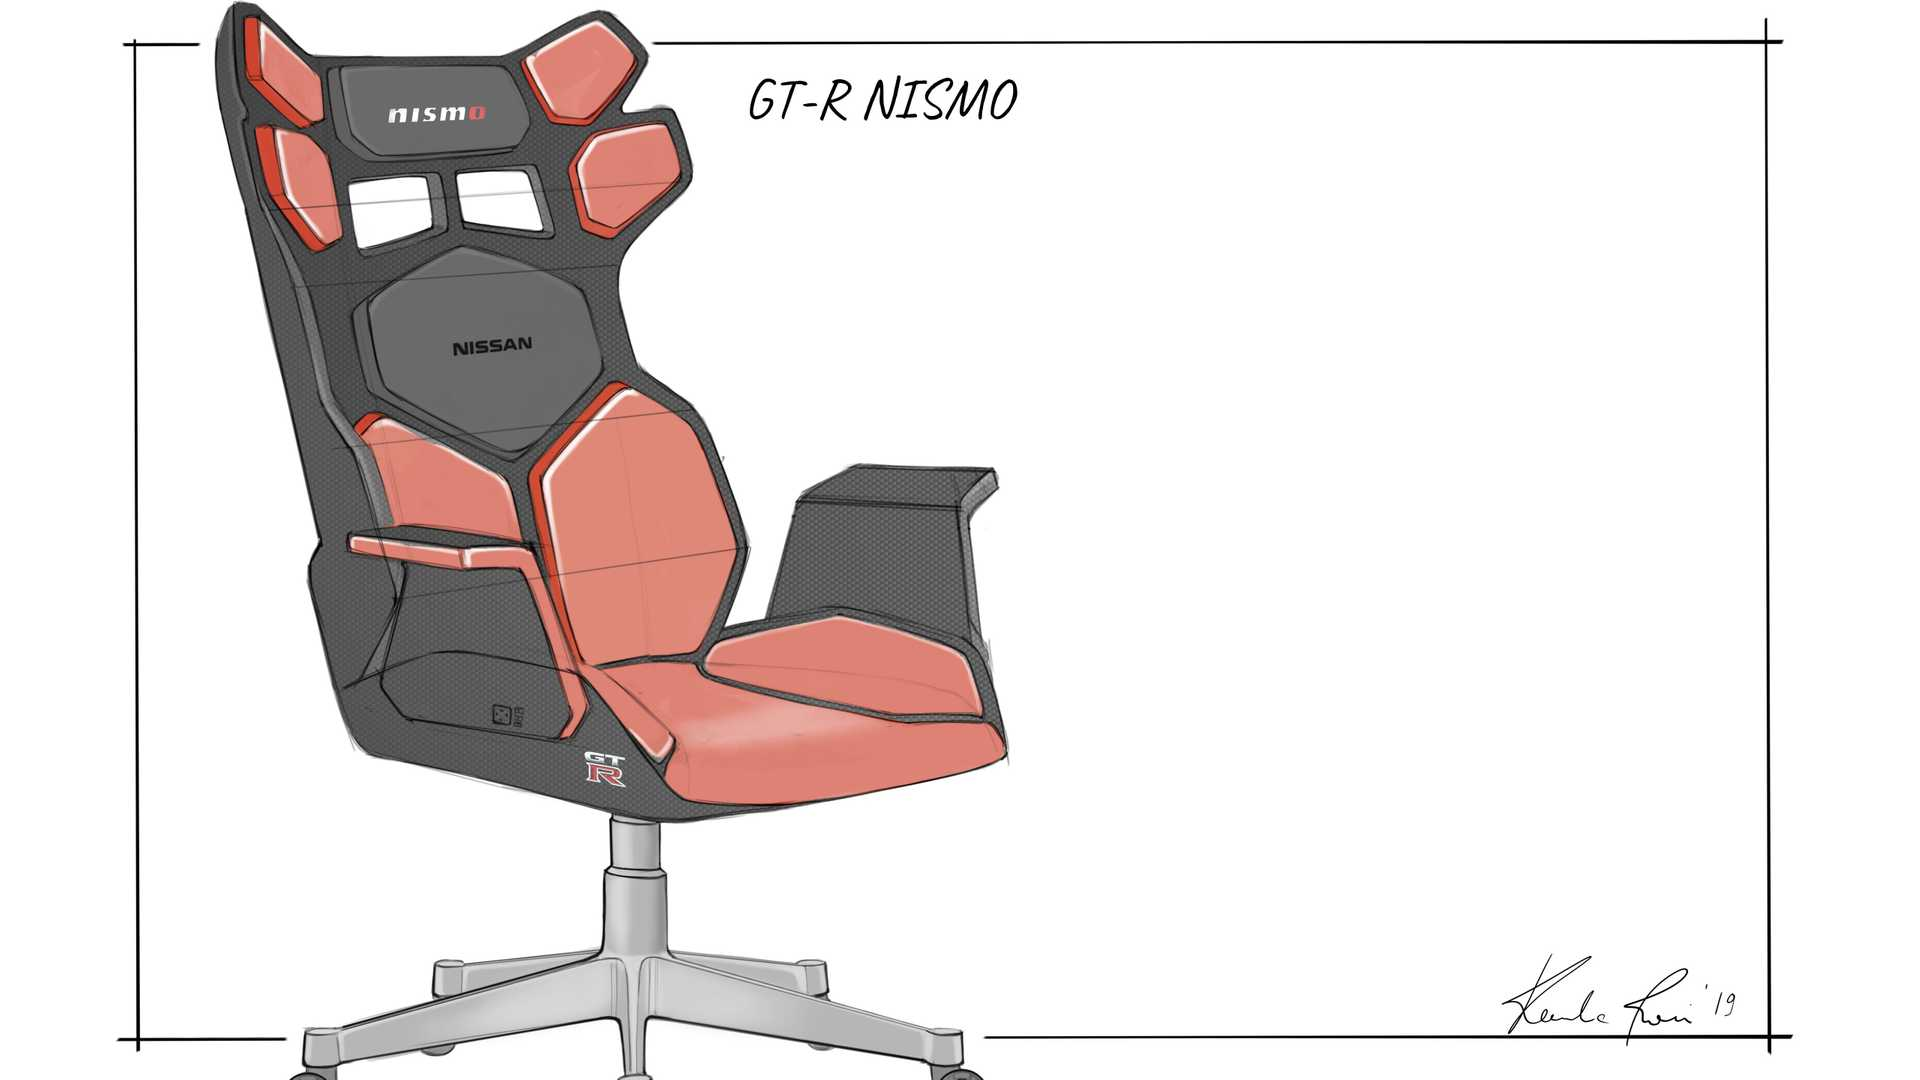 Nissan Sketched Some Sweet Gaming Chairs, But Will They Build Them?